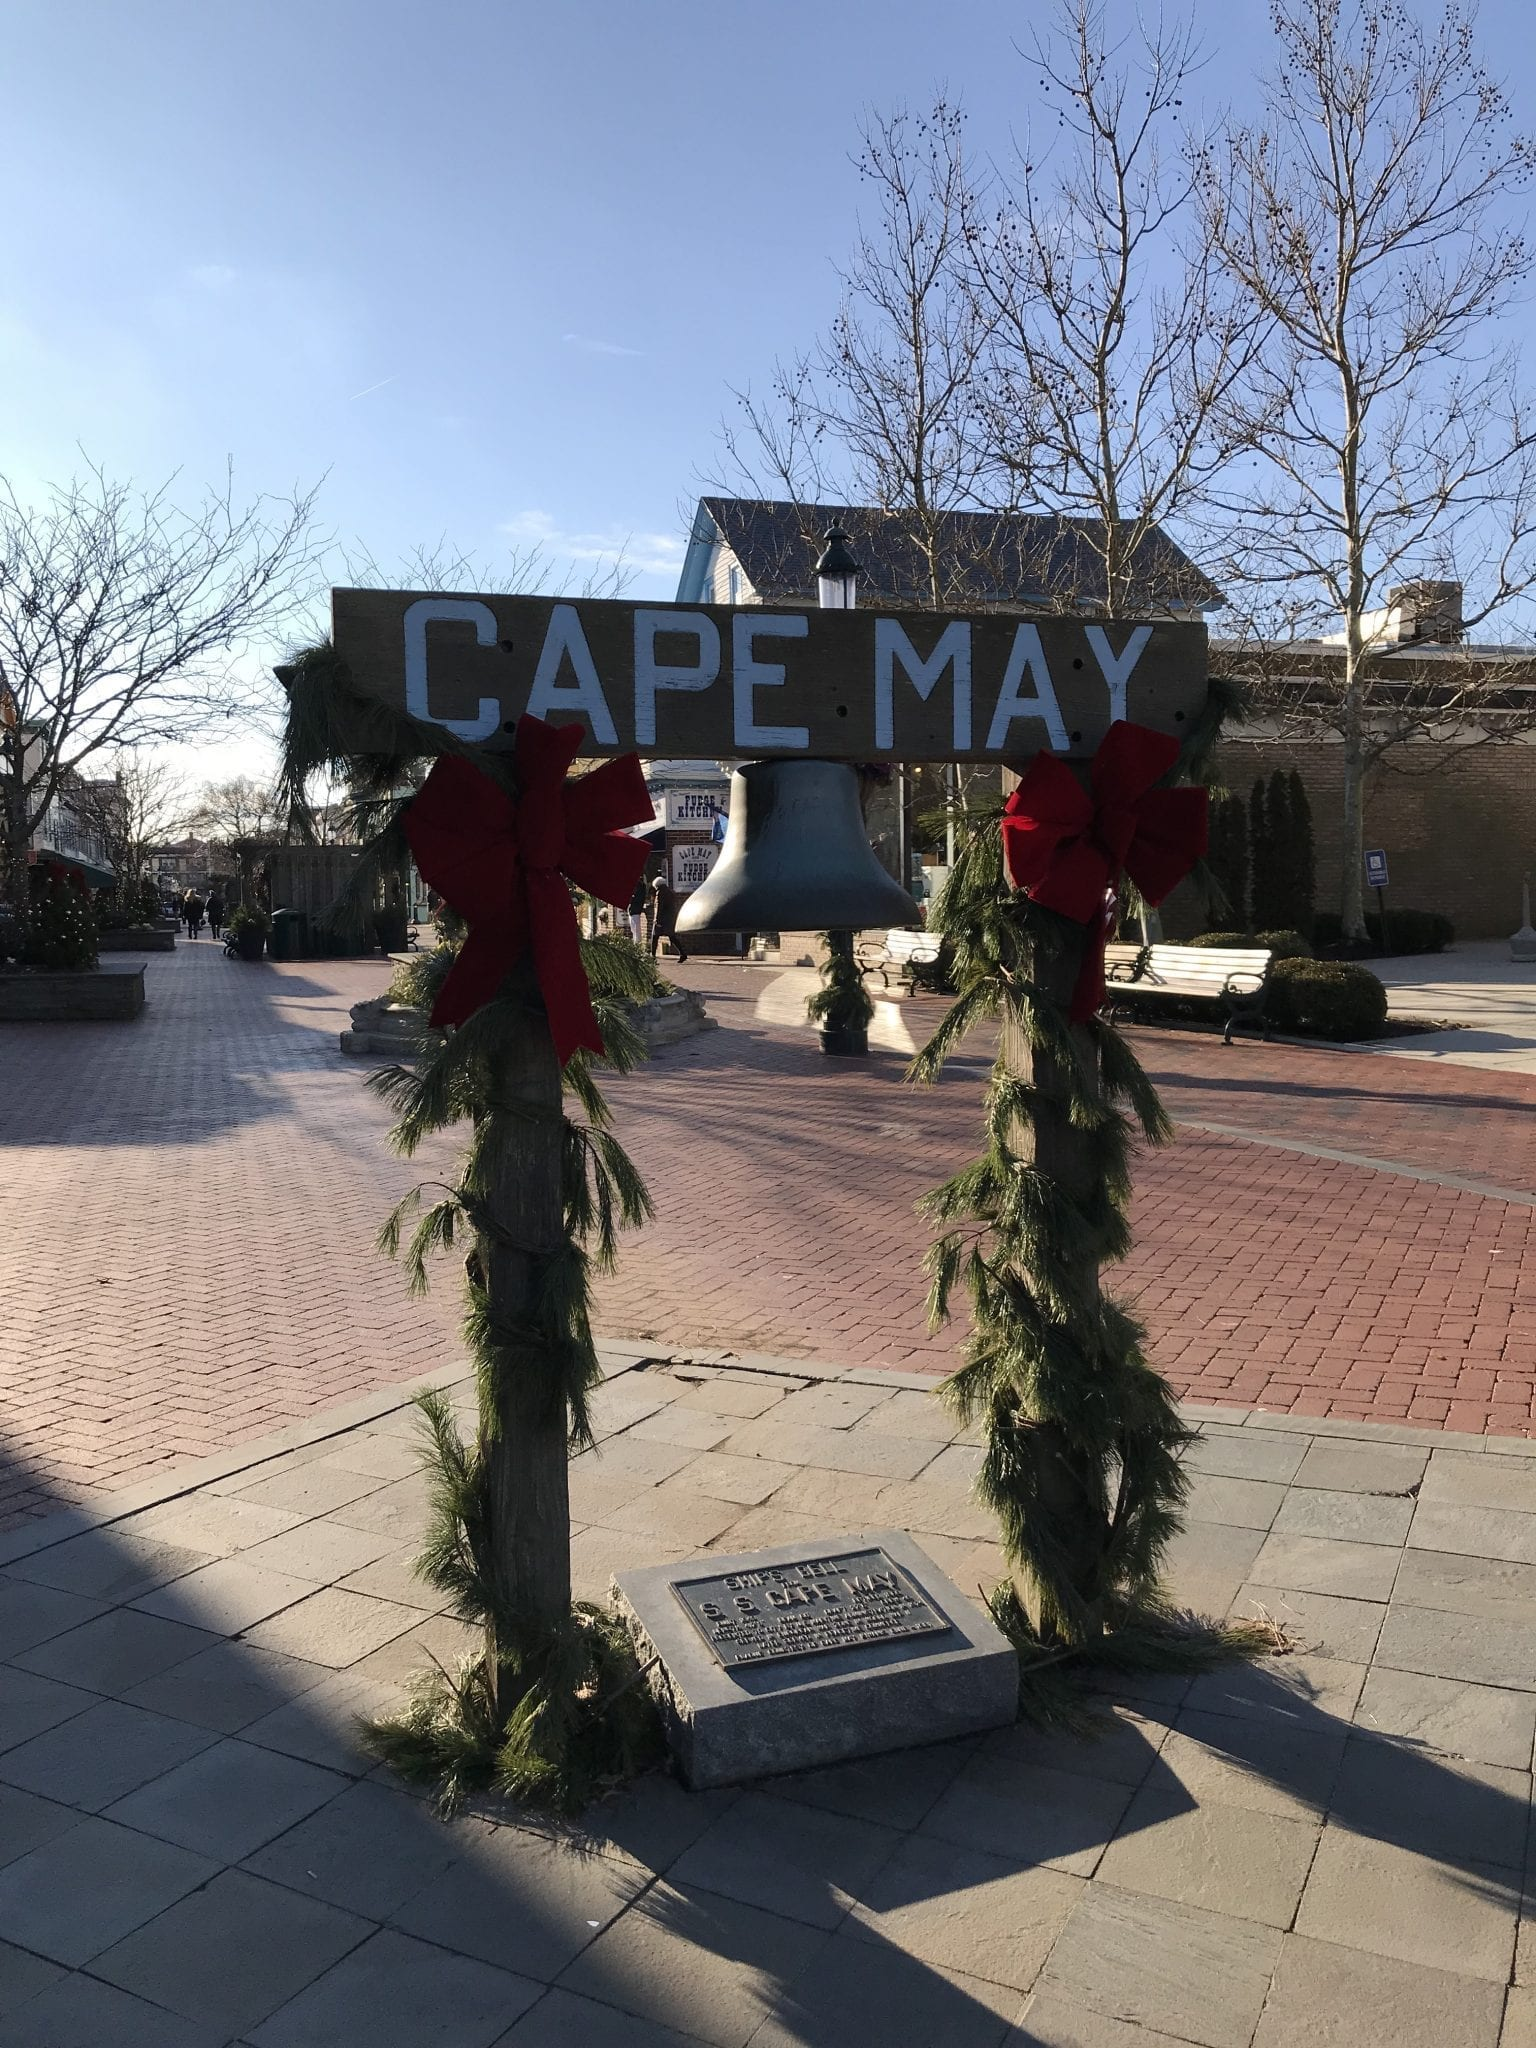 What To Do in Cape May During the Winter